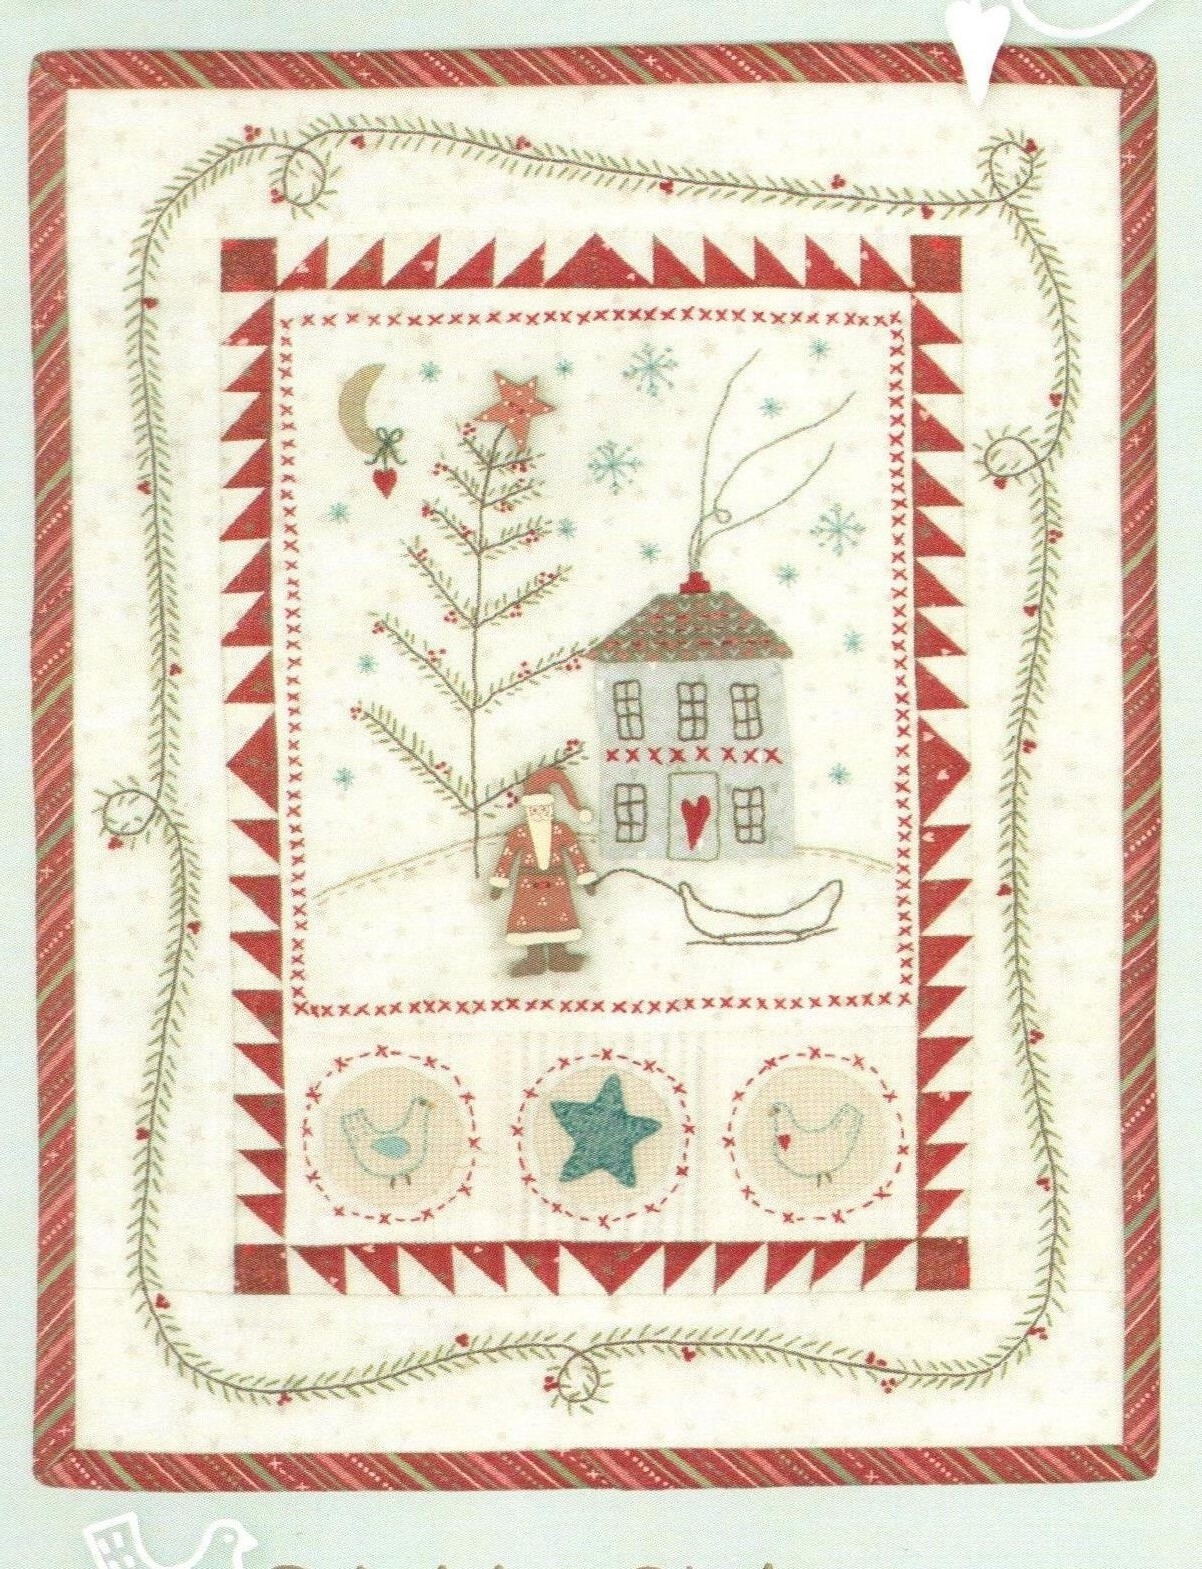 Christmas Quilt Patterns.Primitive Christmas Quilt And Embroidery Pattern With Hand Painted Jolly Santa Button Pack